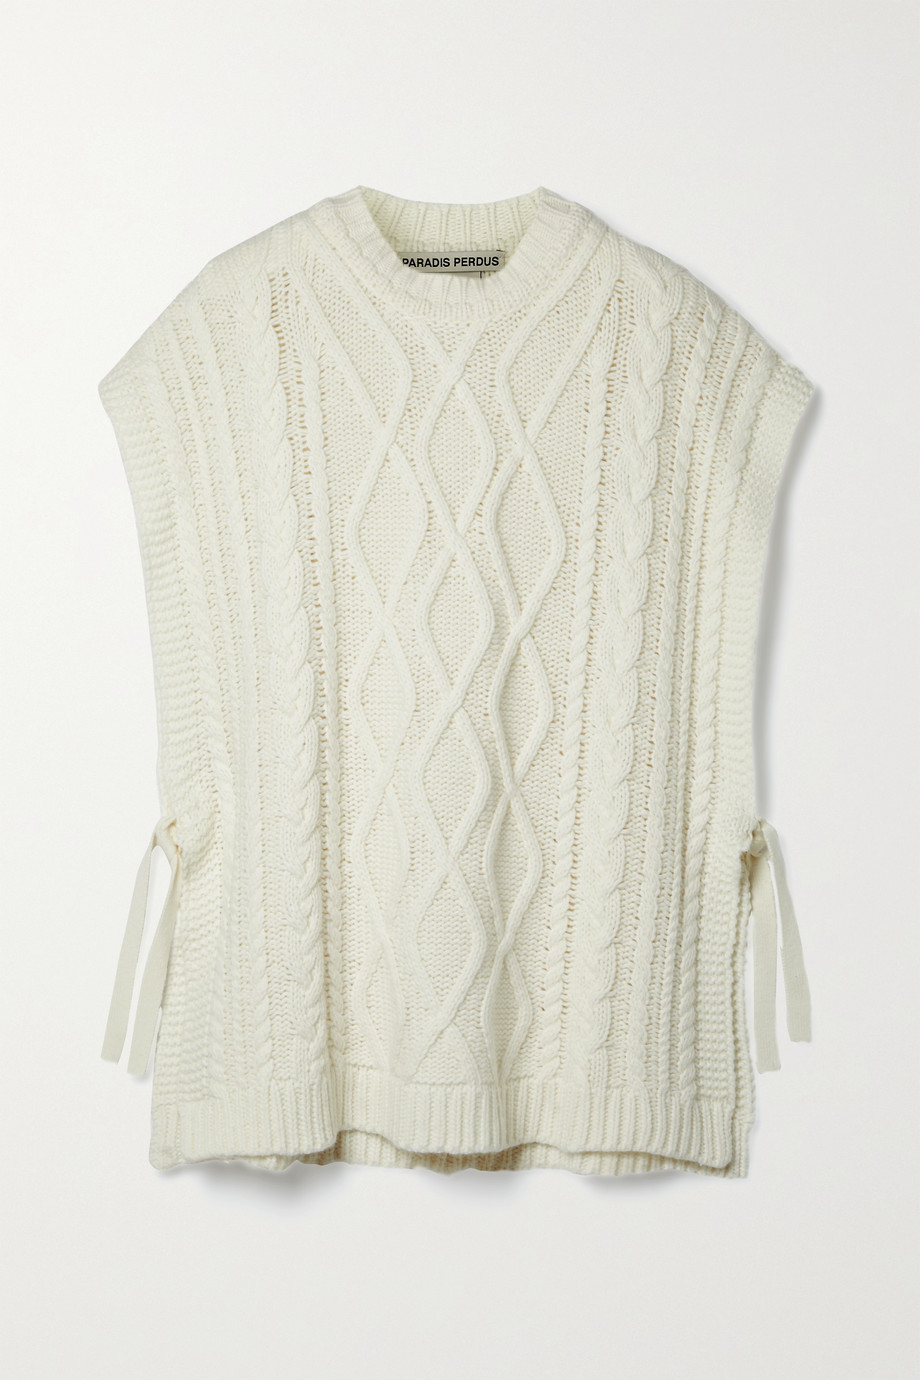 Paradis Perdus + NET SUSTAIN Vasco cable-knit recycled merino wool-blend poncho